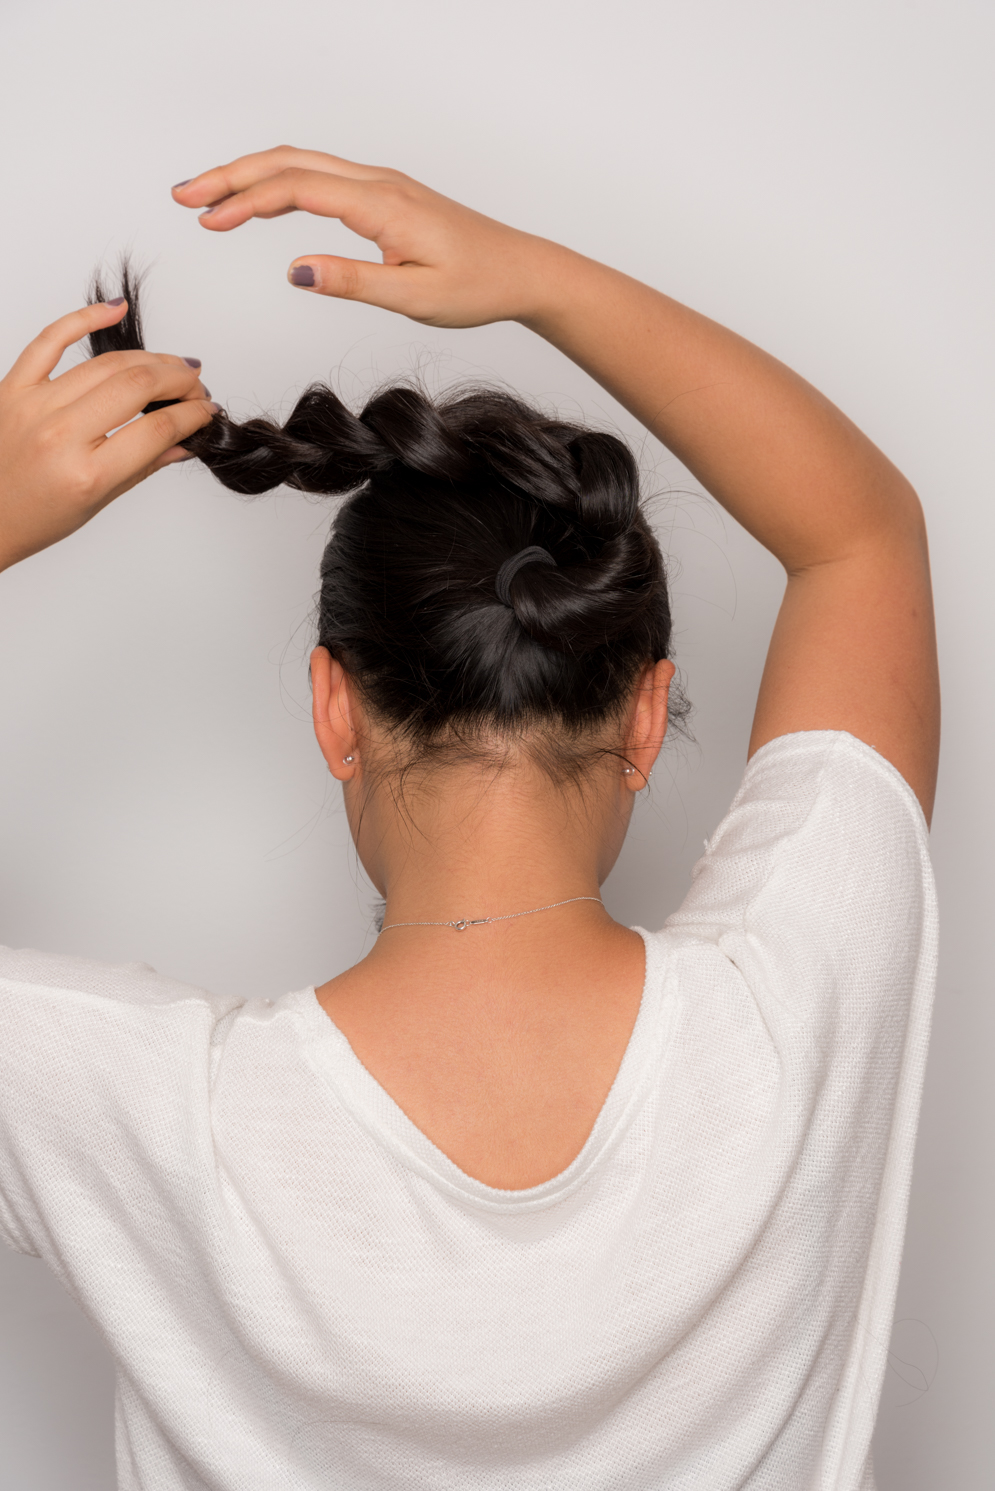 ROCK MAMA NYC LIFESTYLE BLOG - HOW TO MAKE A STYLISH BUN